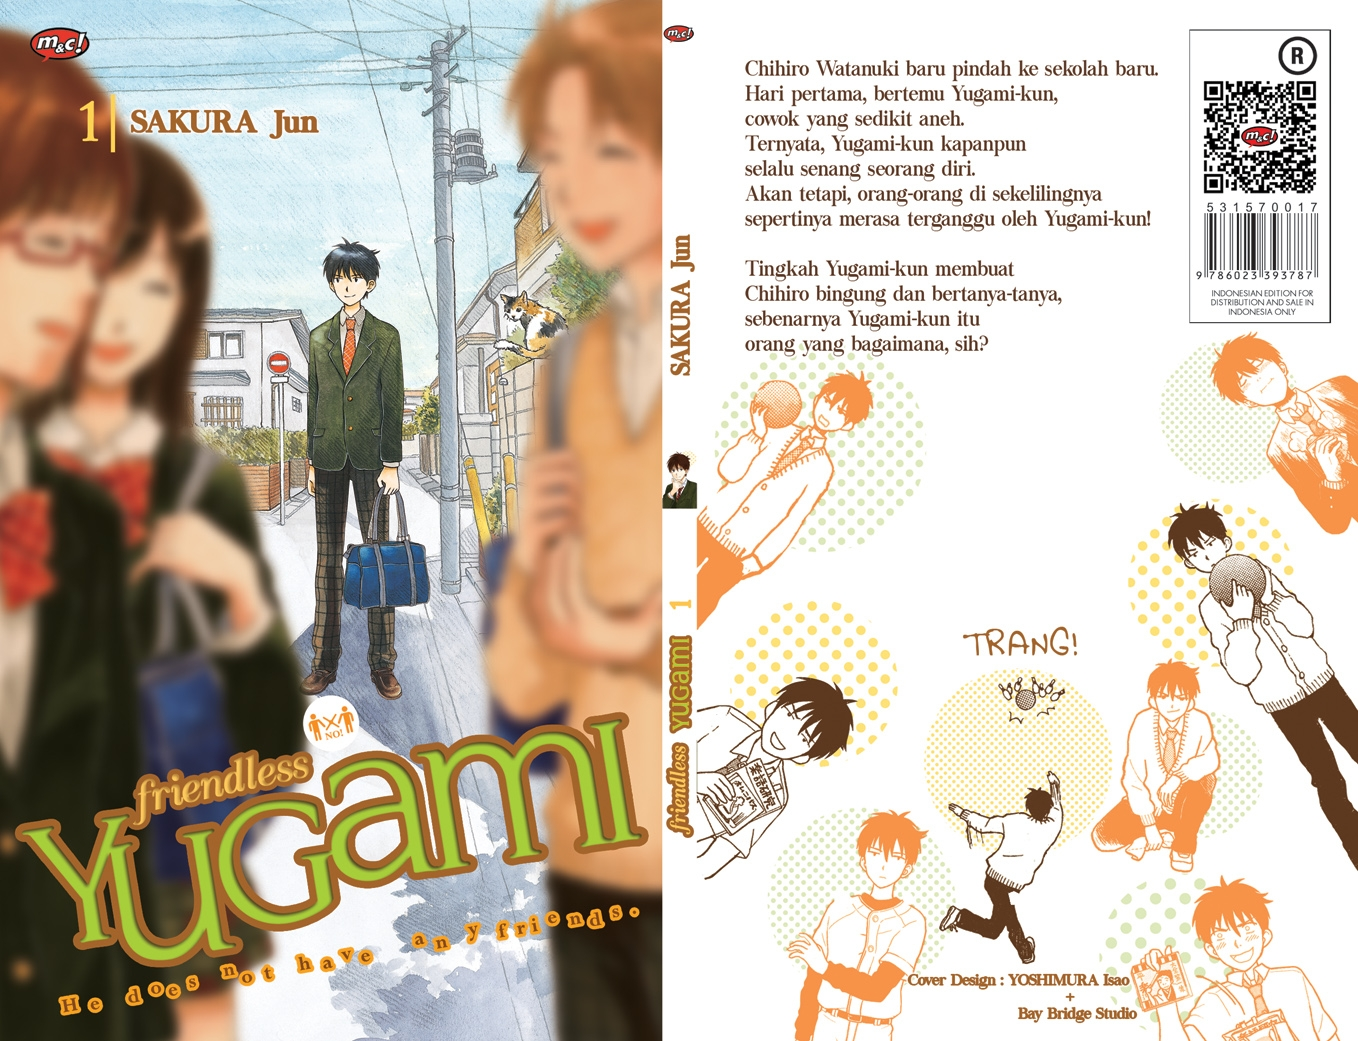 image_large_55c9c1823fd06_6_AGUSTUS_REVISI_1_COVER_FRIENDLESS_YUGAMI_01